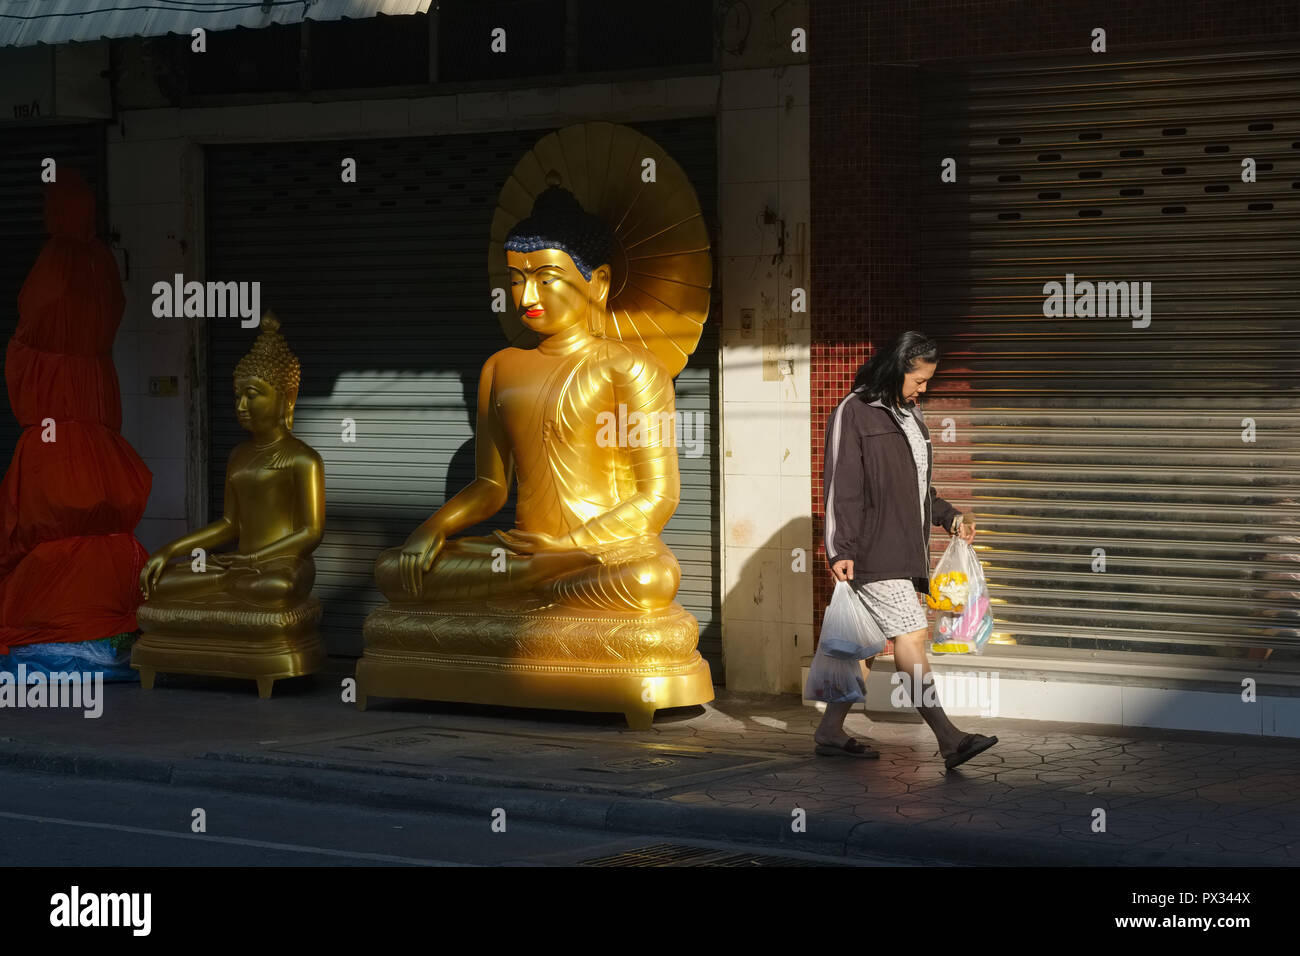 A woman, in early morning sunlight, passing Buddha statues outside a factory and outlet for religious objects in Bamrung Muang Rd., Bangkok, Thailand - Stock Image